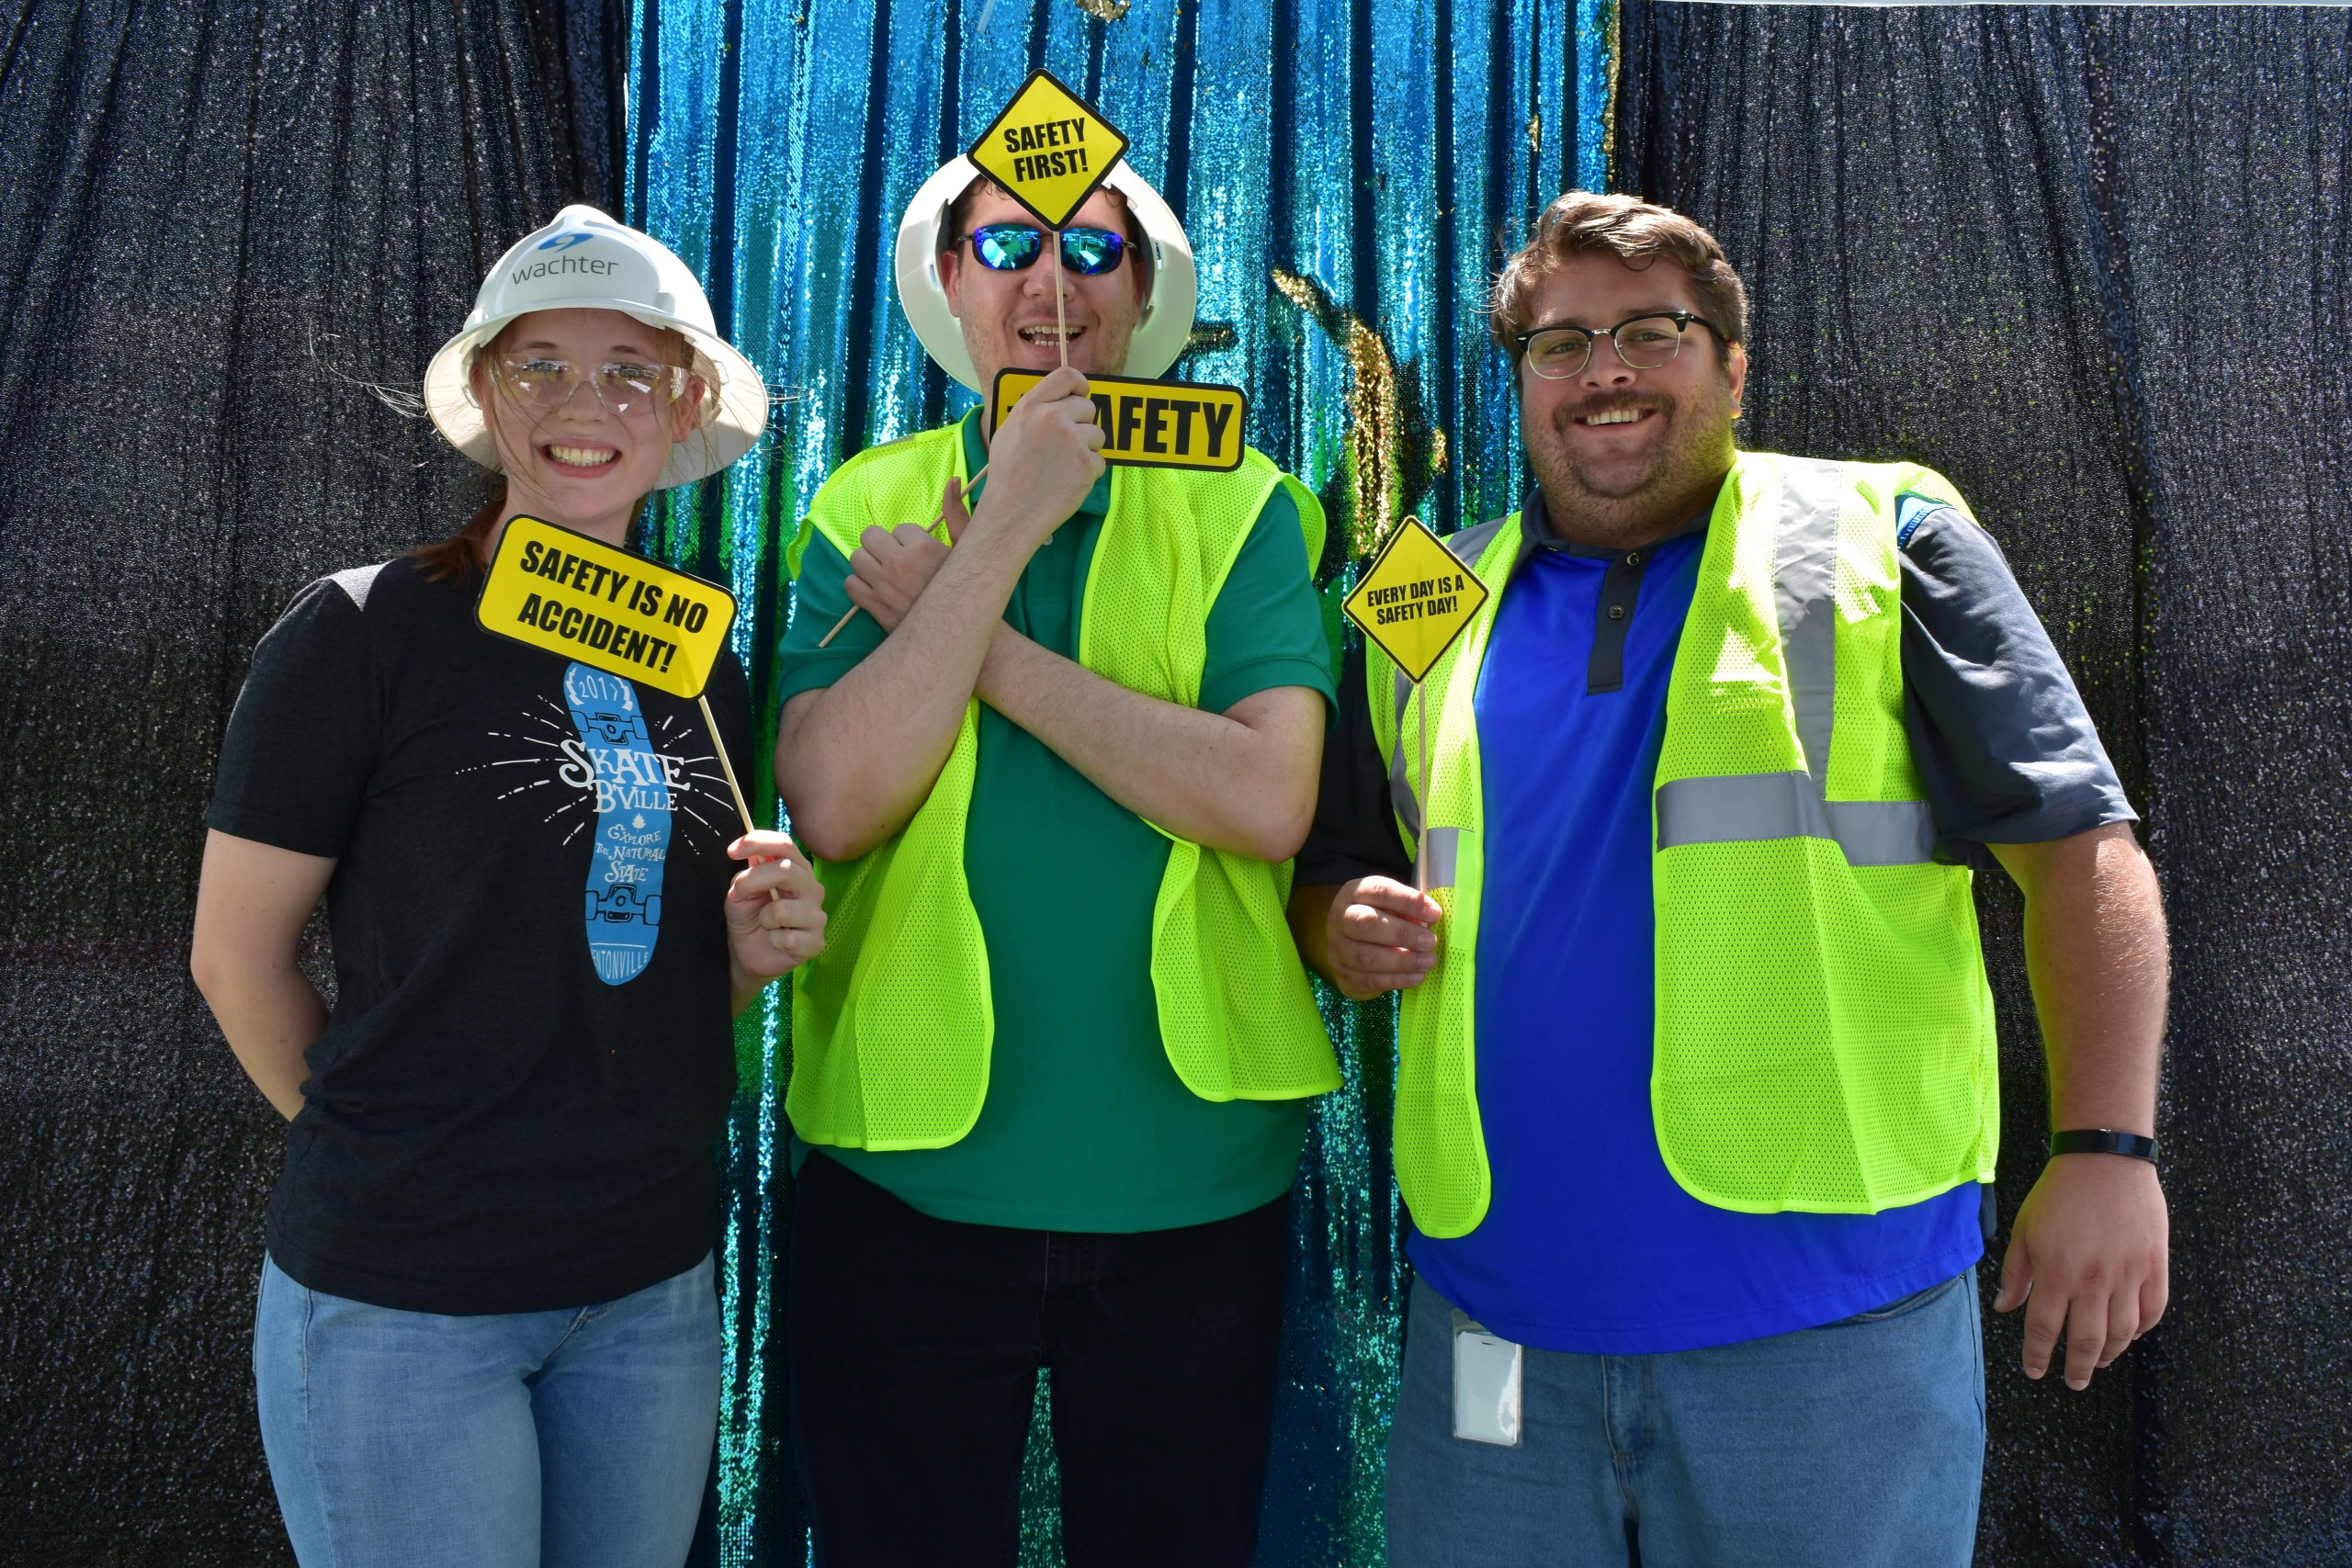 Safety picture booth photo of fun employees